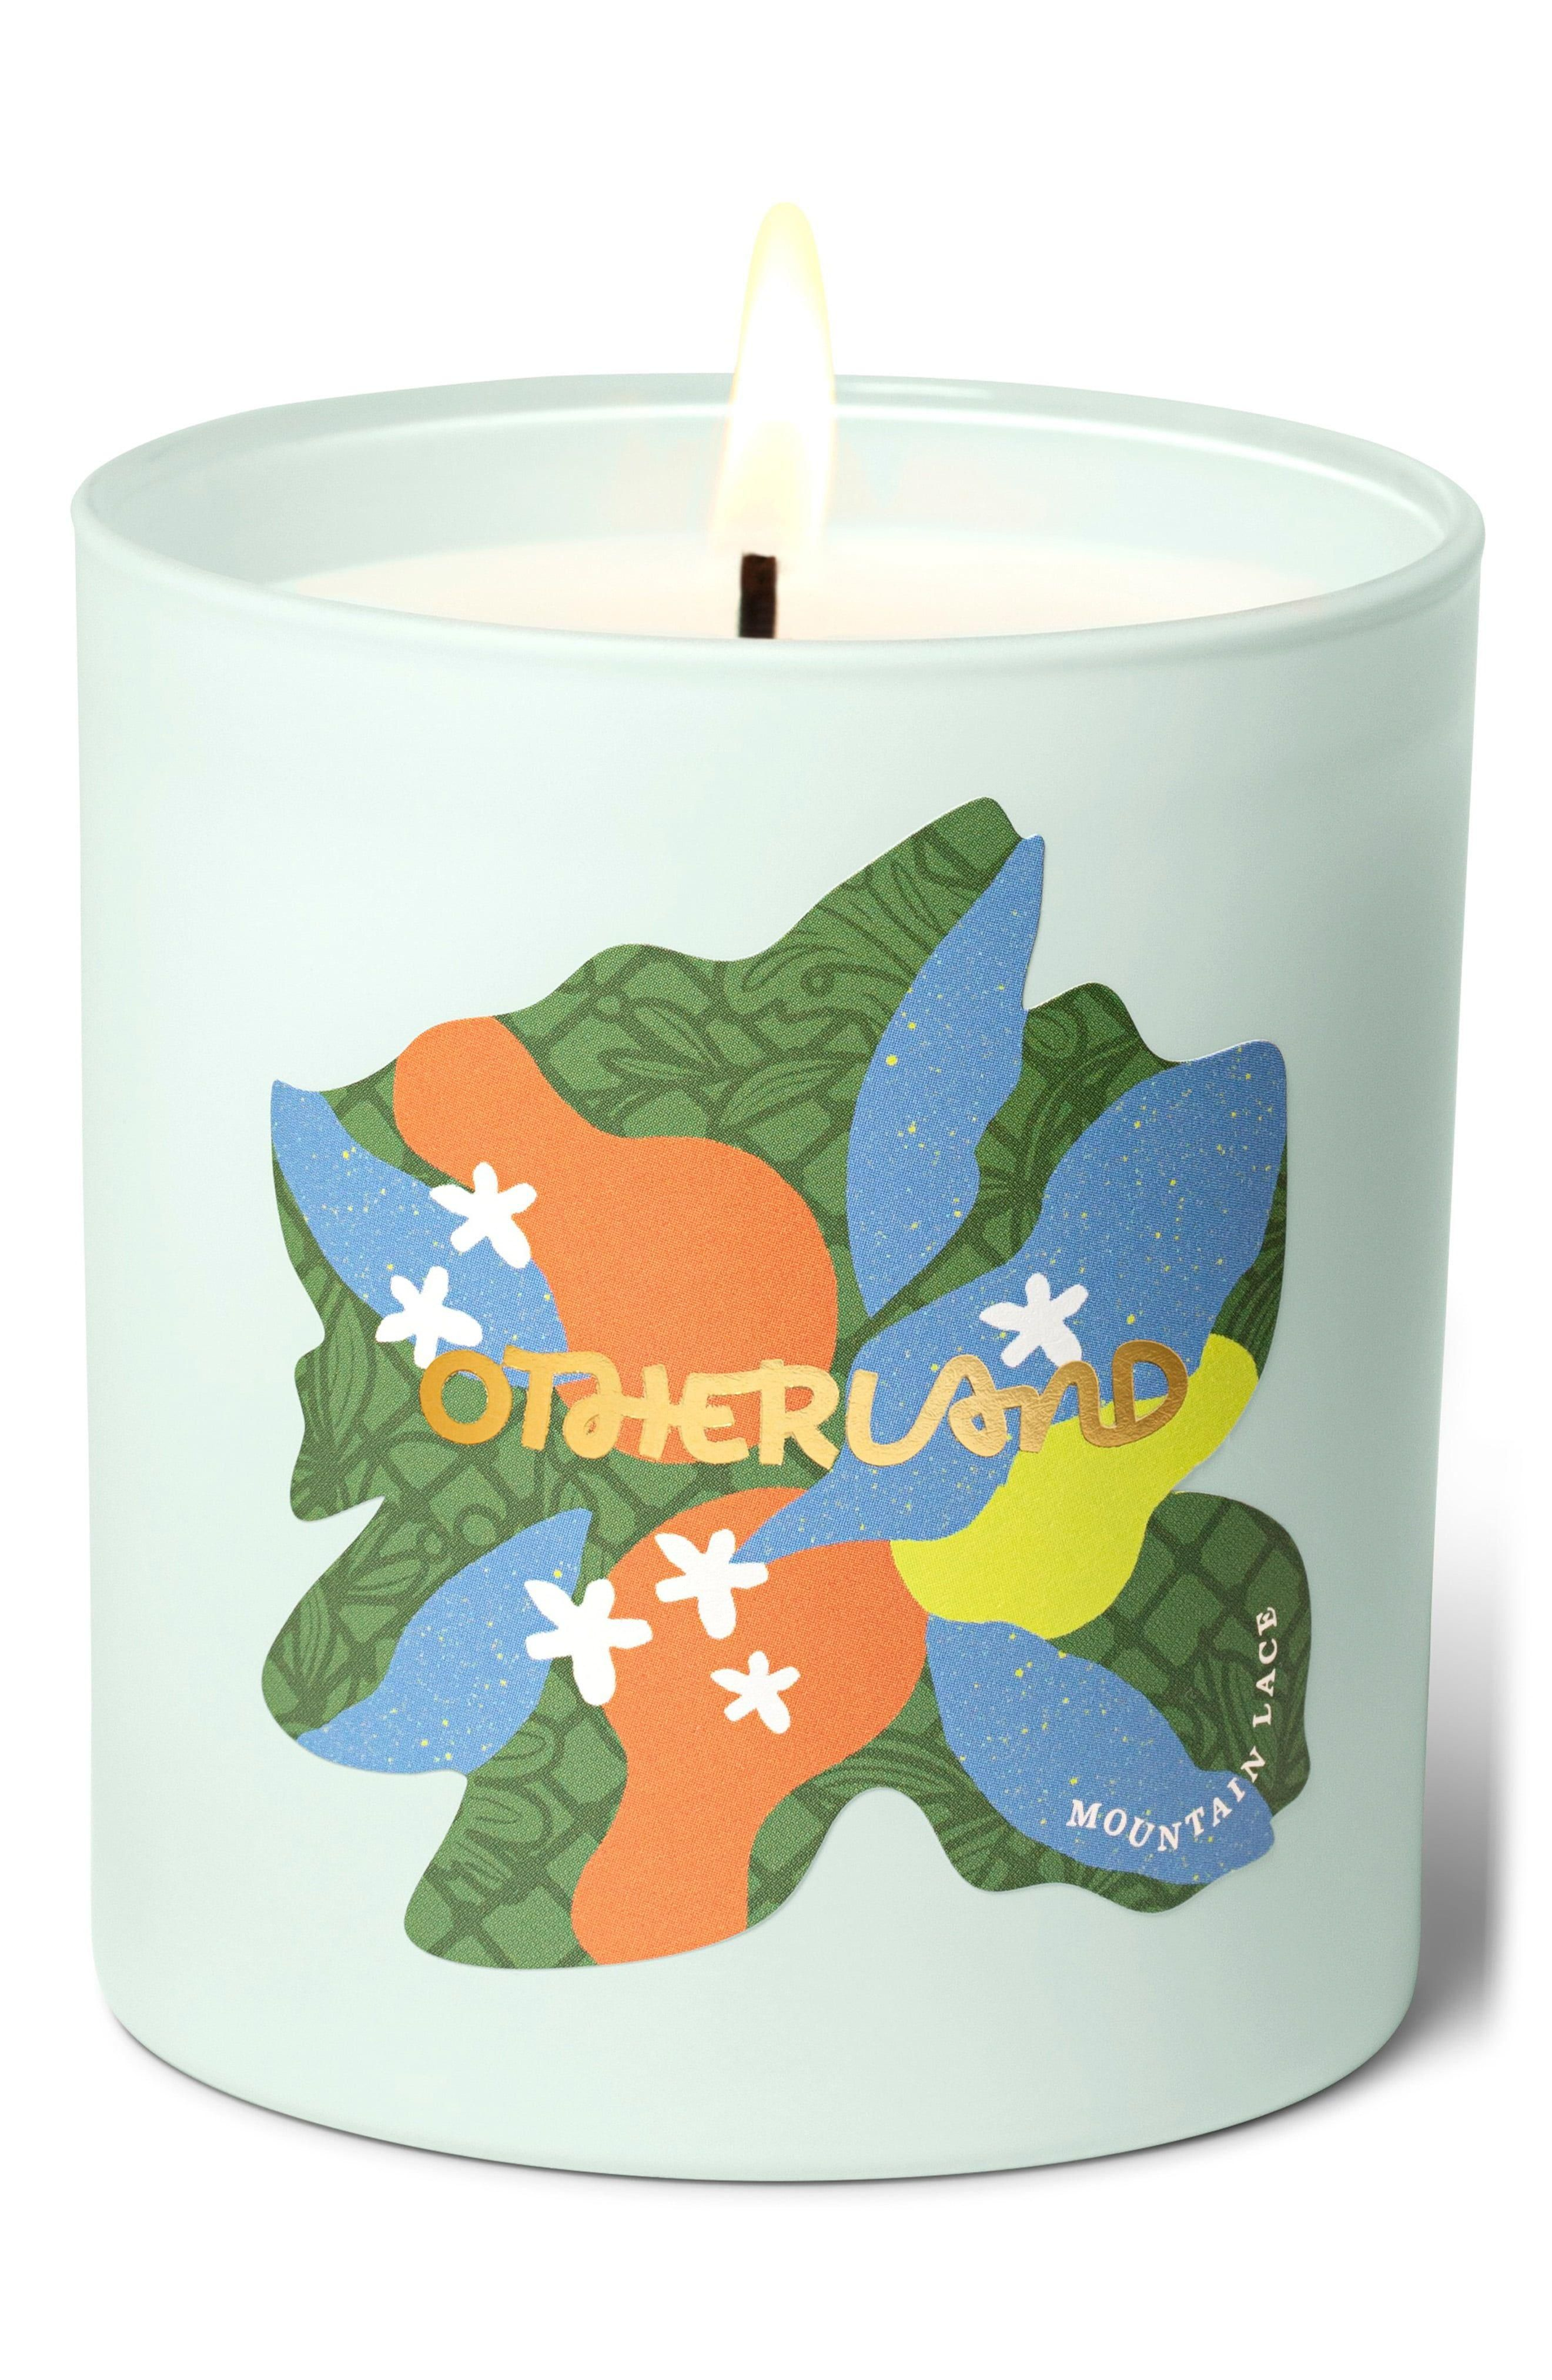 Manor House Weekend Candle in Mountain Lace